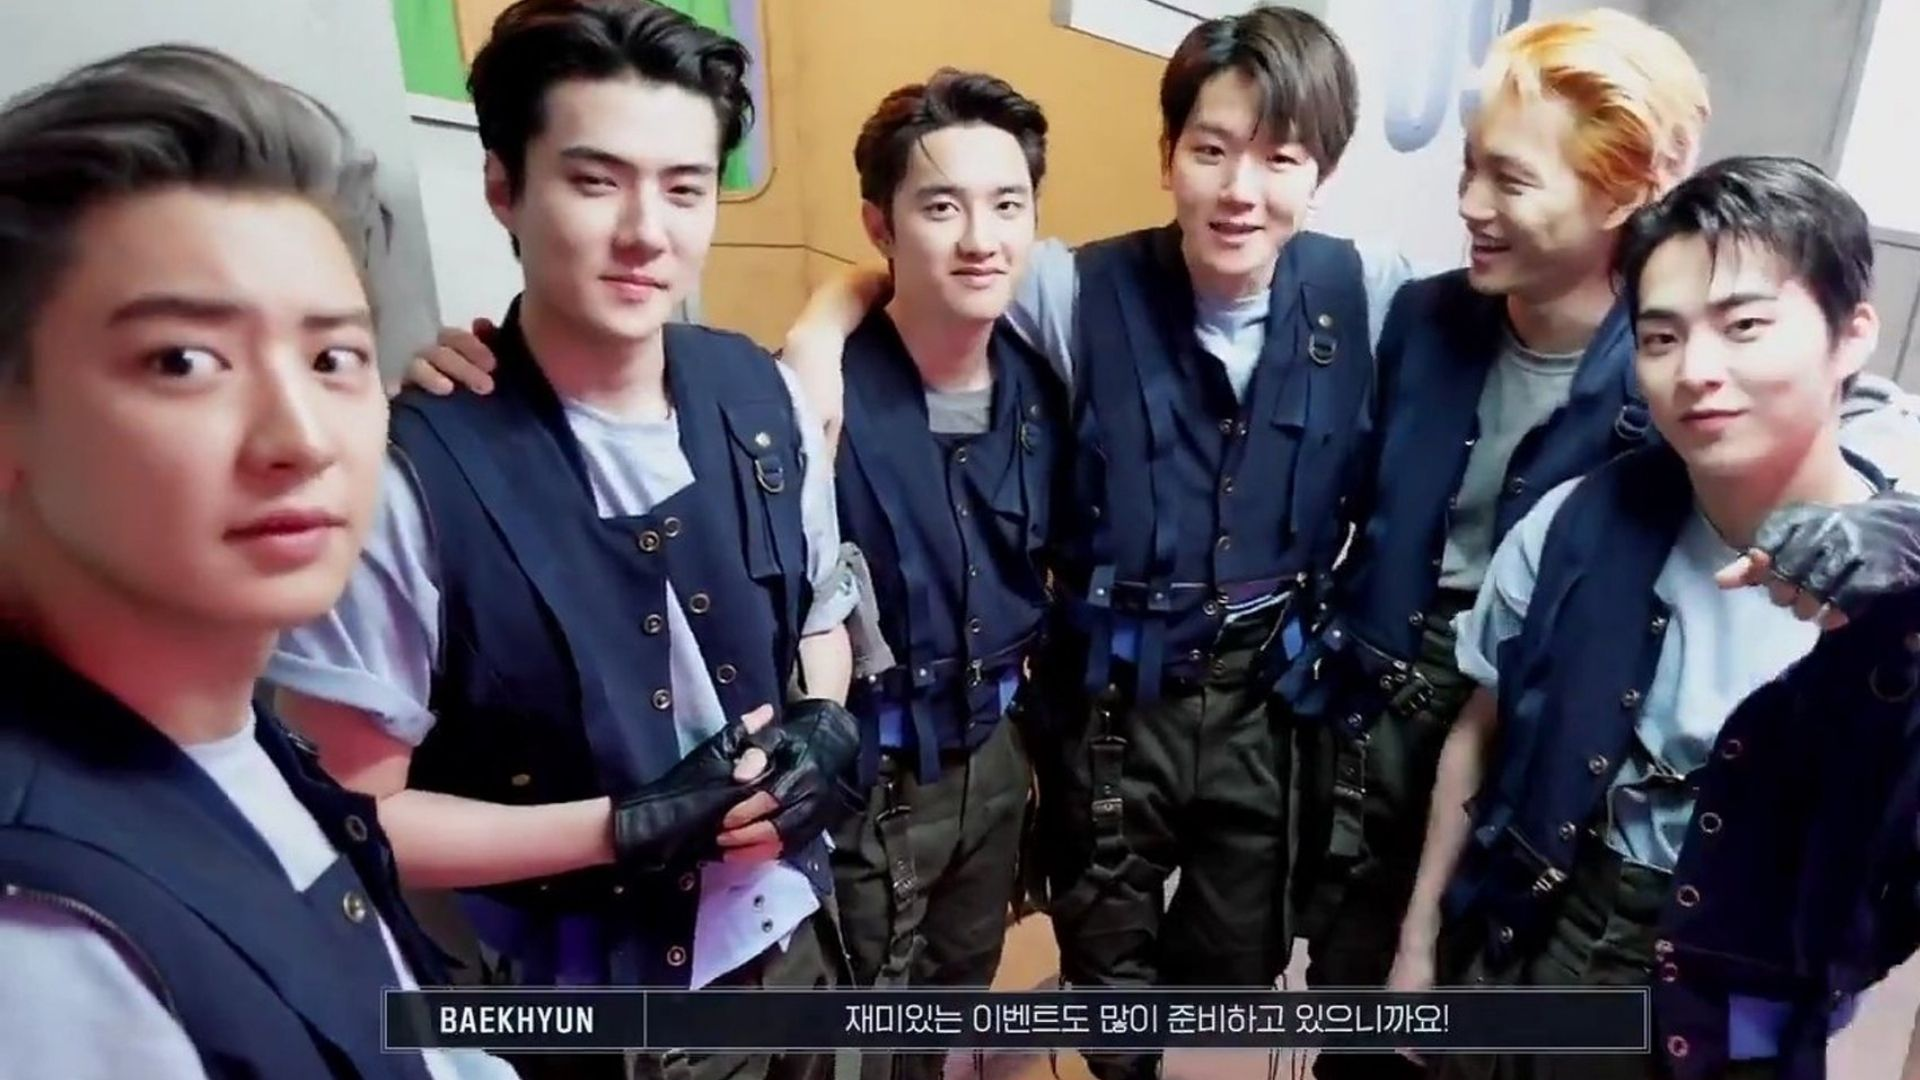 EXO Comeback Confirmed on Their 9th Anniversary Debut Day